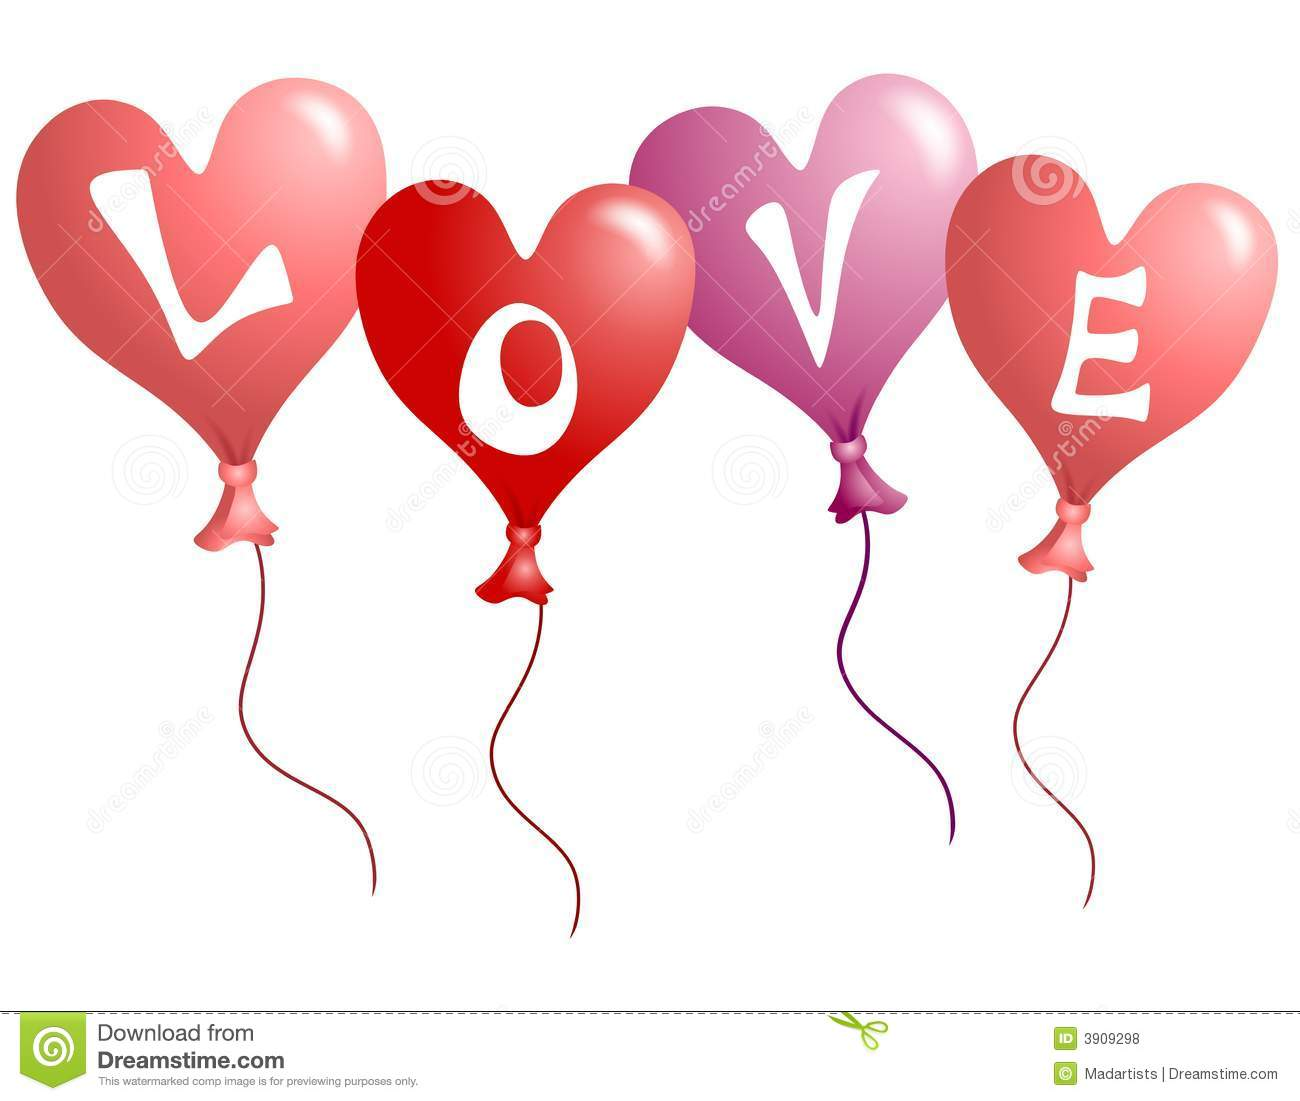 Valentine clipart for facebook clipart free download Fb clipart for valentine day - ClipartFest clipart free download